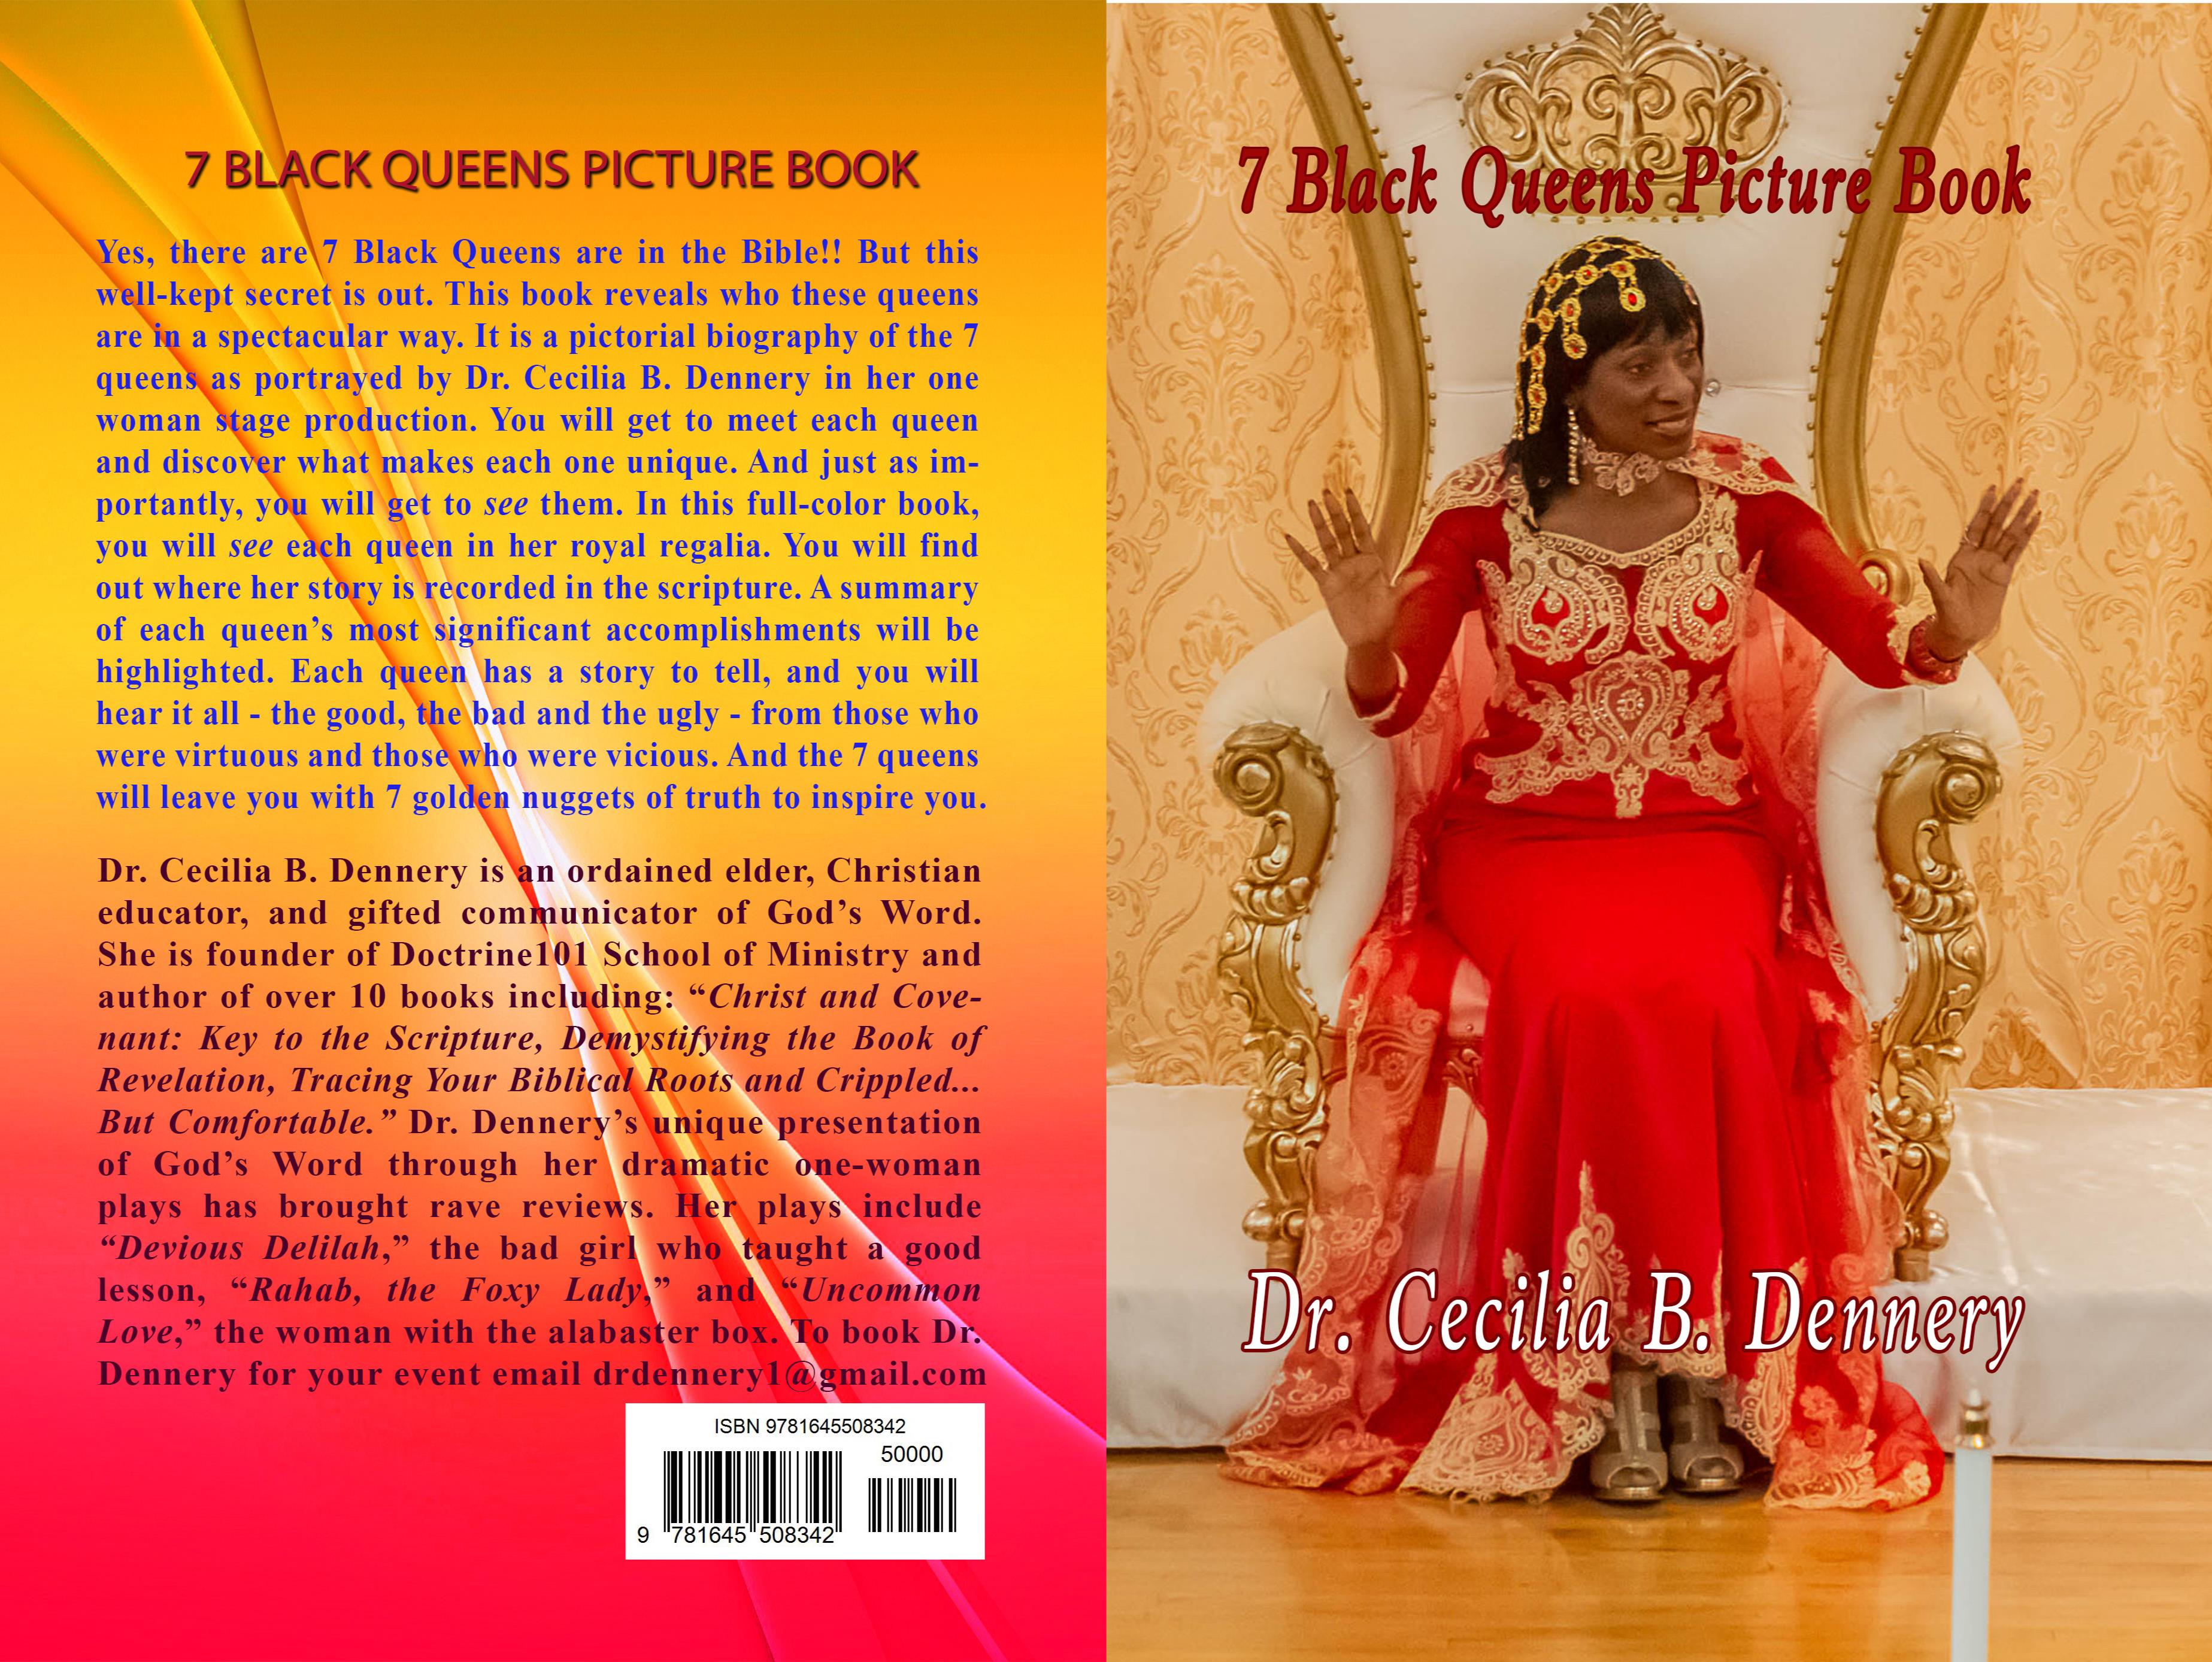 7 Black Queens Picture Book cover image